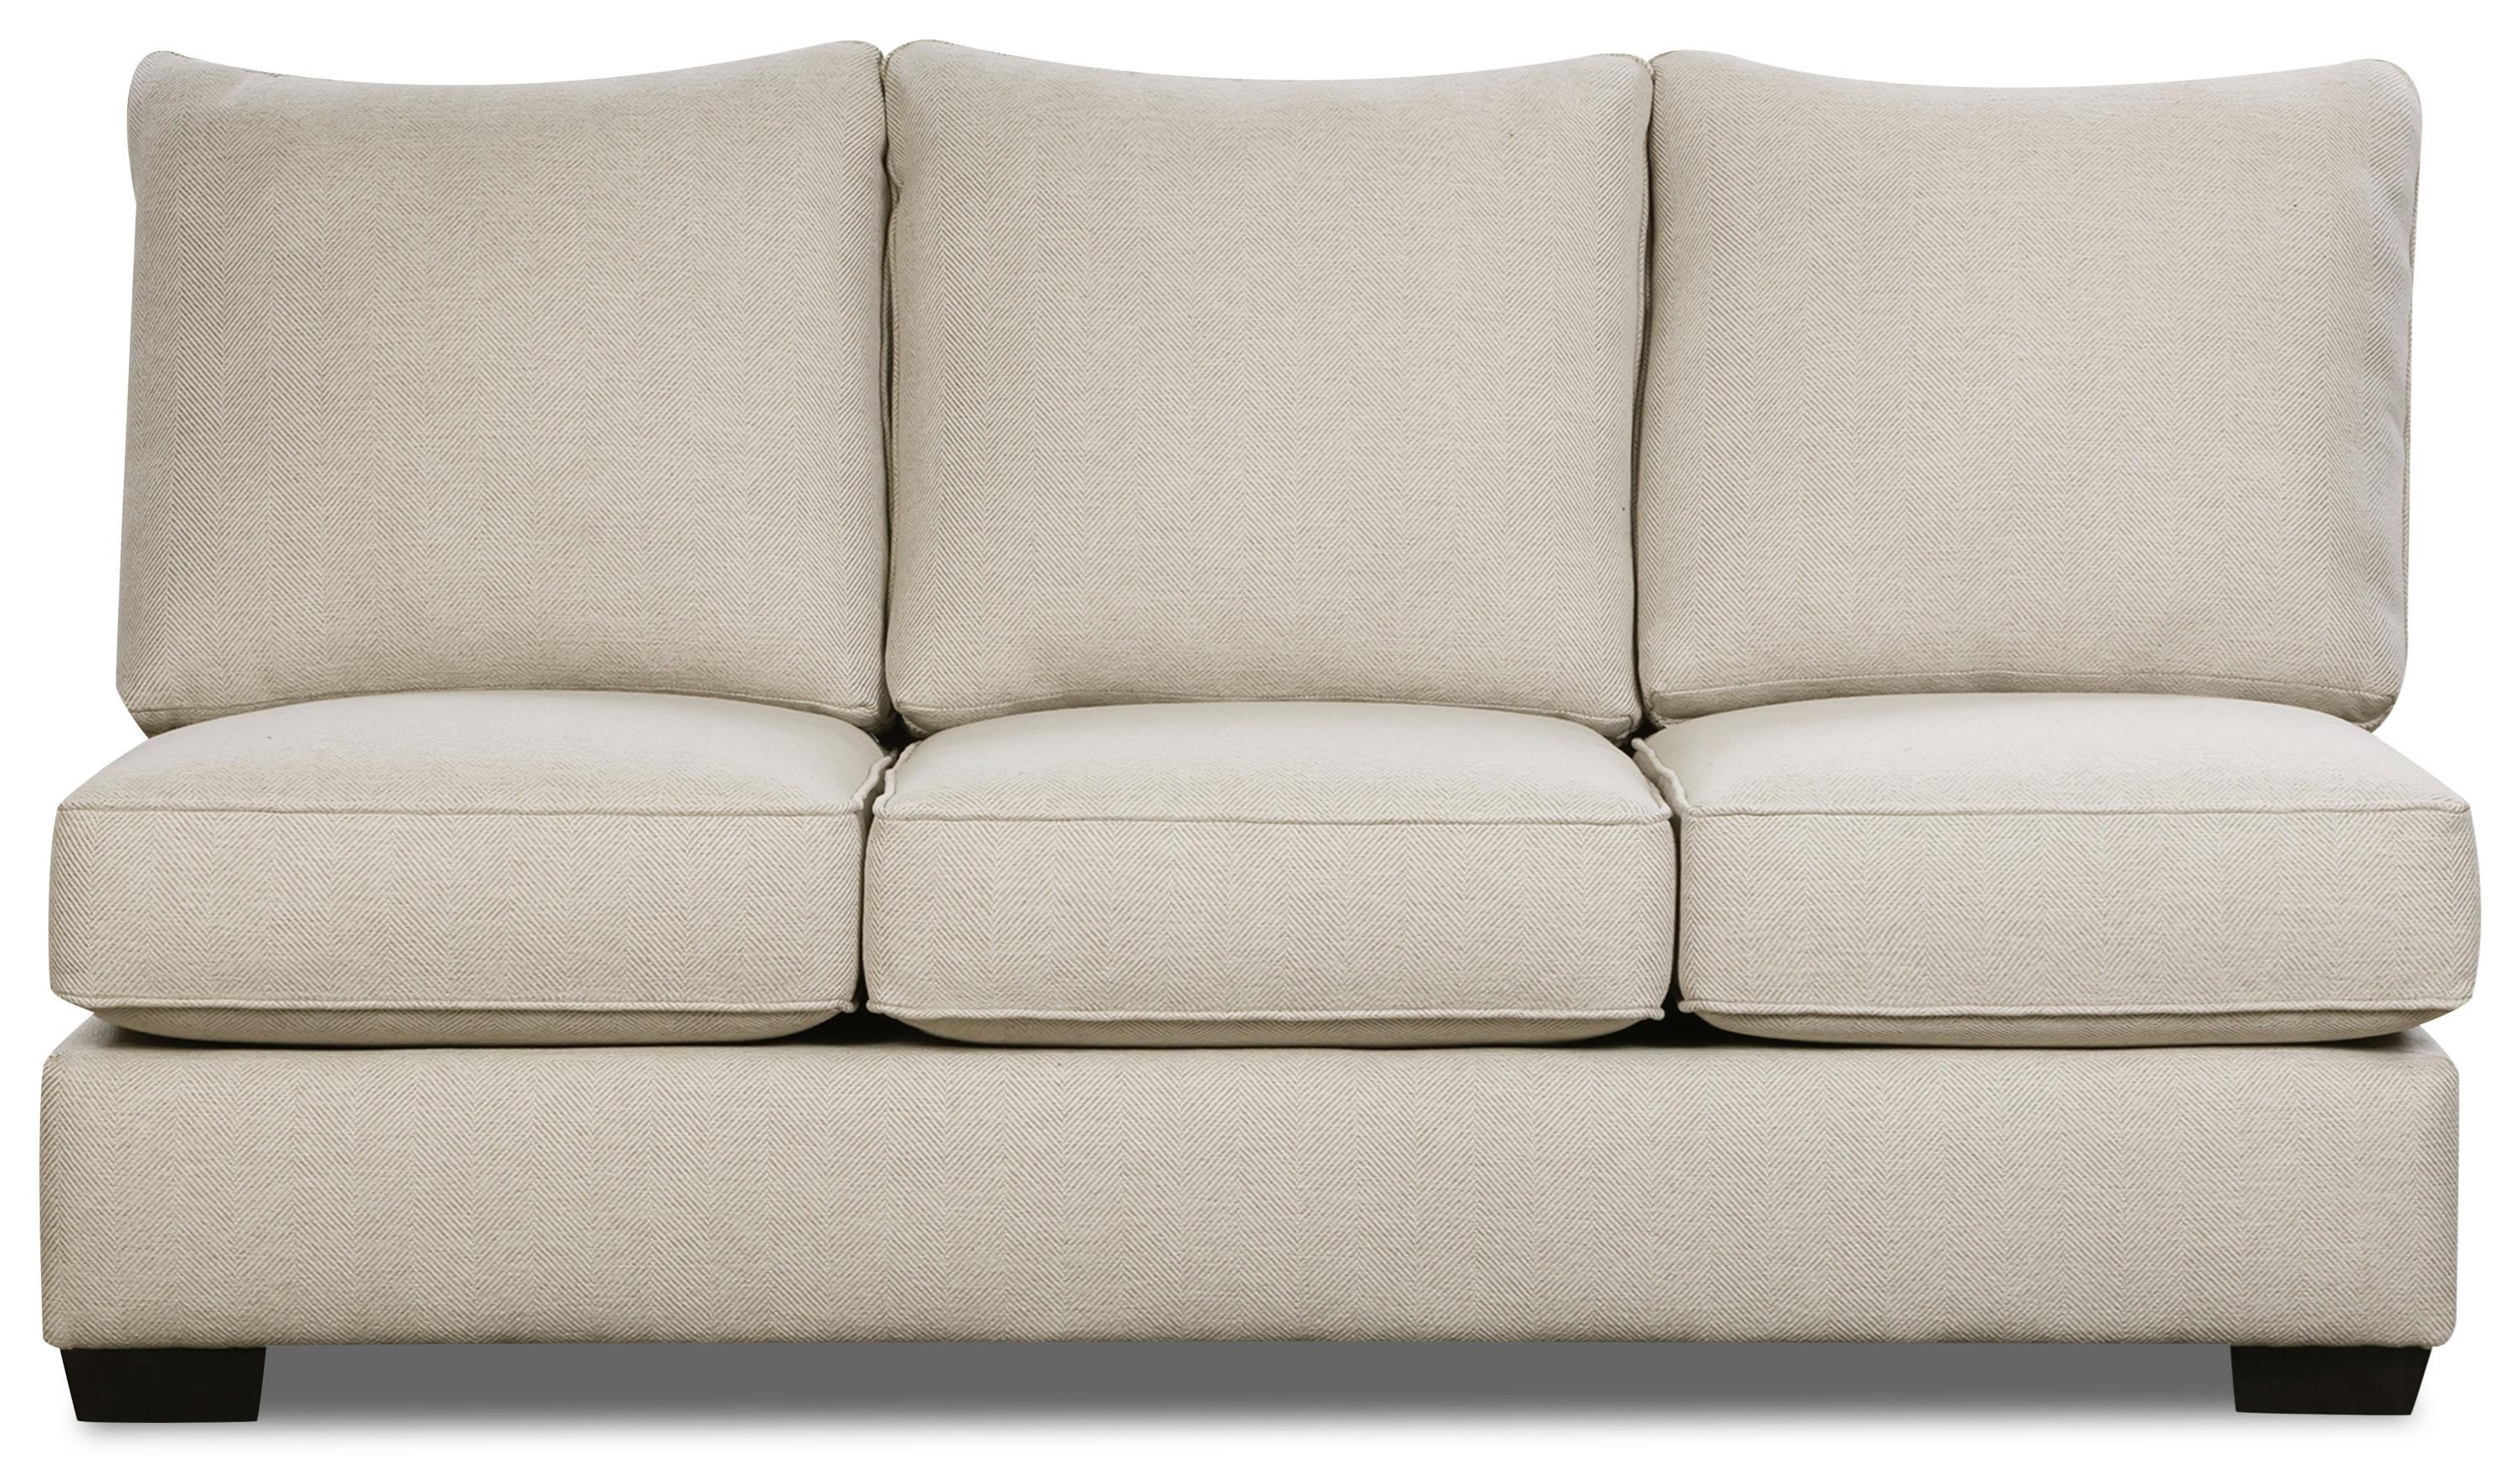 Corinthian Colonist Grp 32bx Cu Sectionial Oatmeal Sectional With Chaise Great American Home